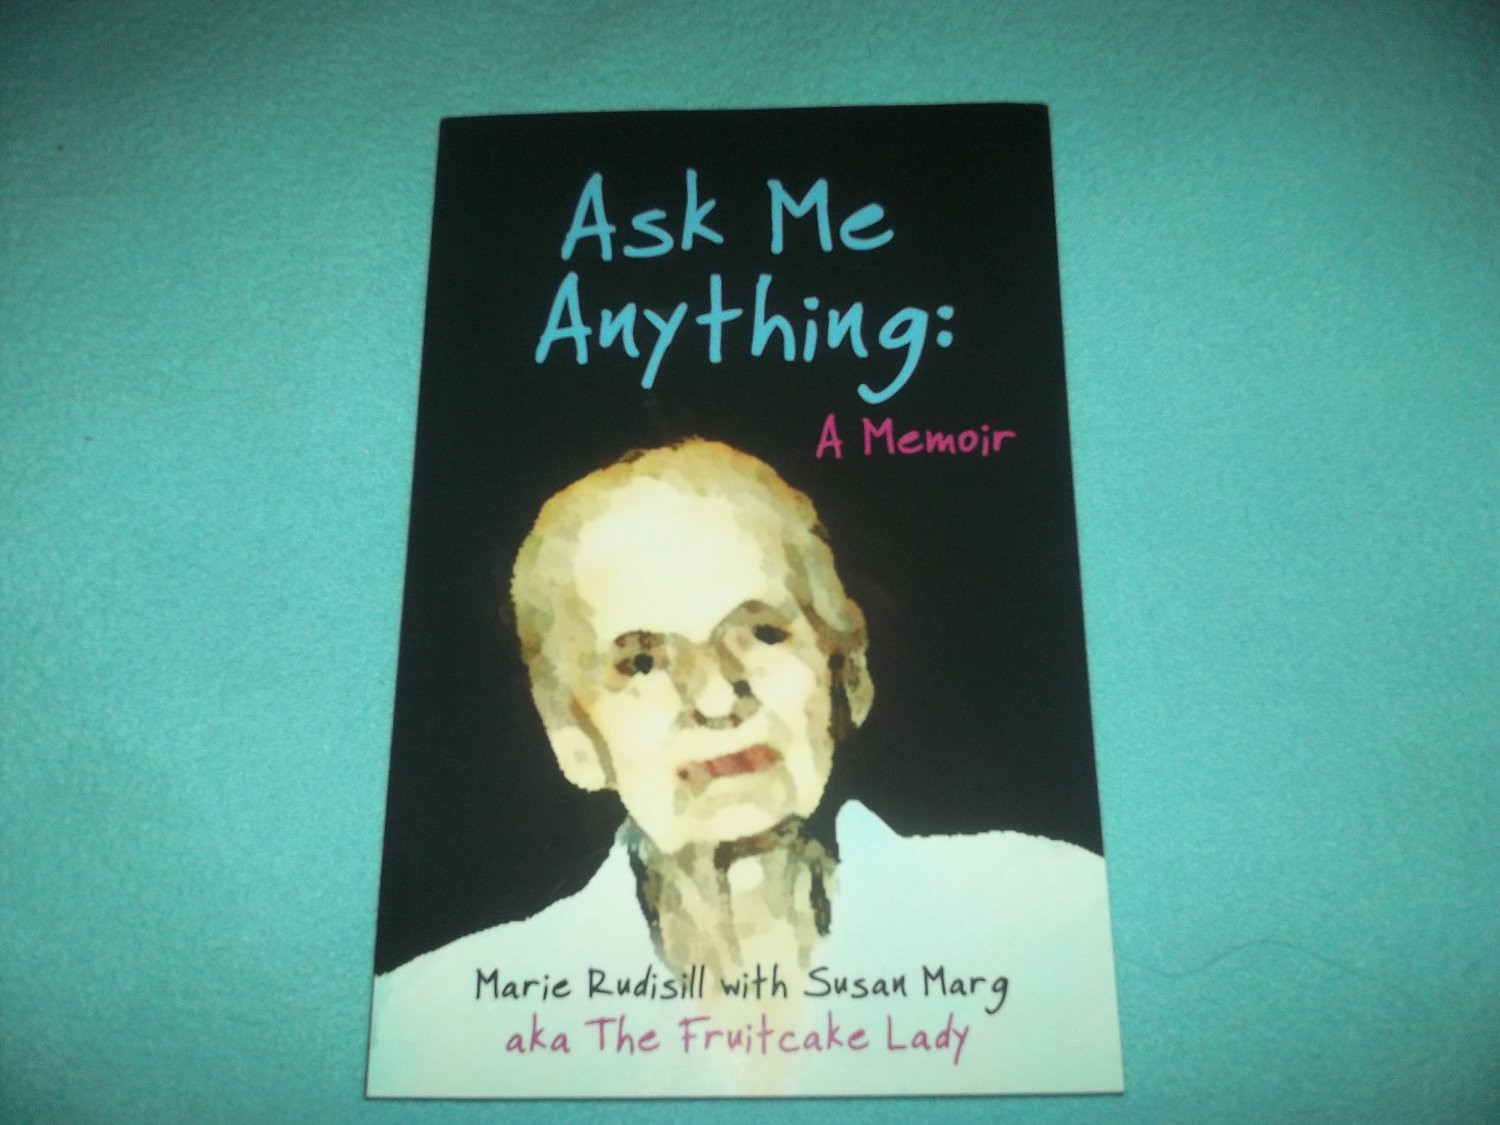 Ask The Fruitcake Lady  ASK ME ANYTHING A MEMOIR SC BOOK MARIE RUDISILL SUSAN